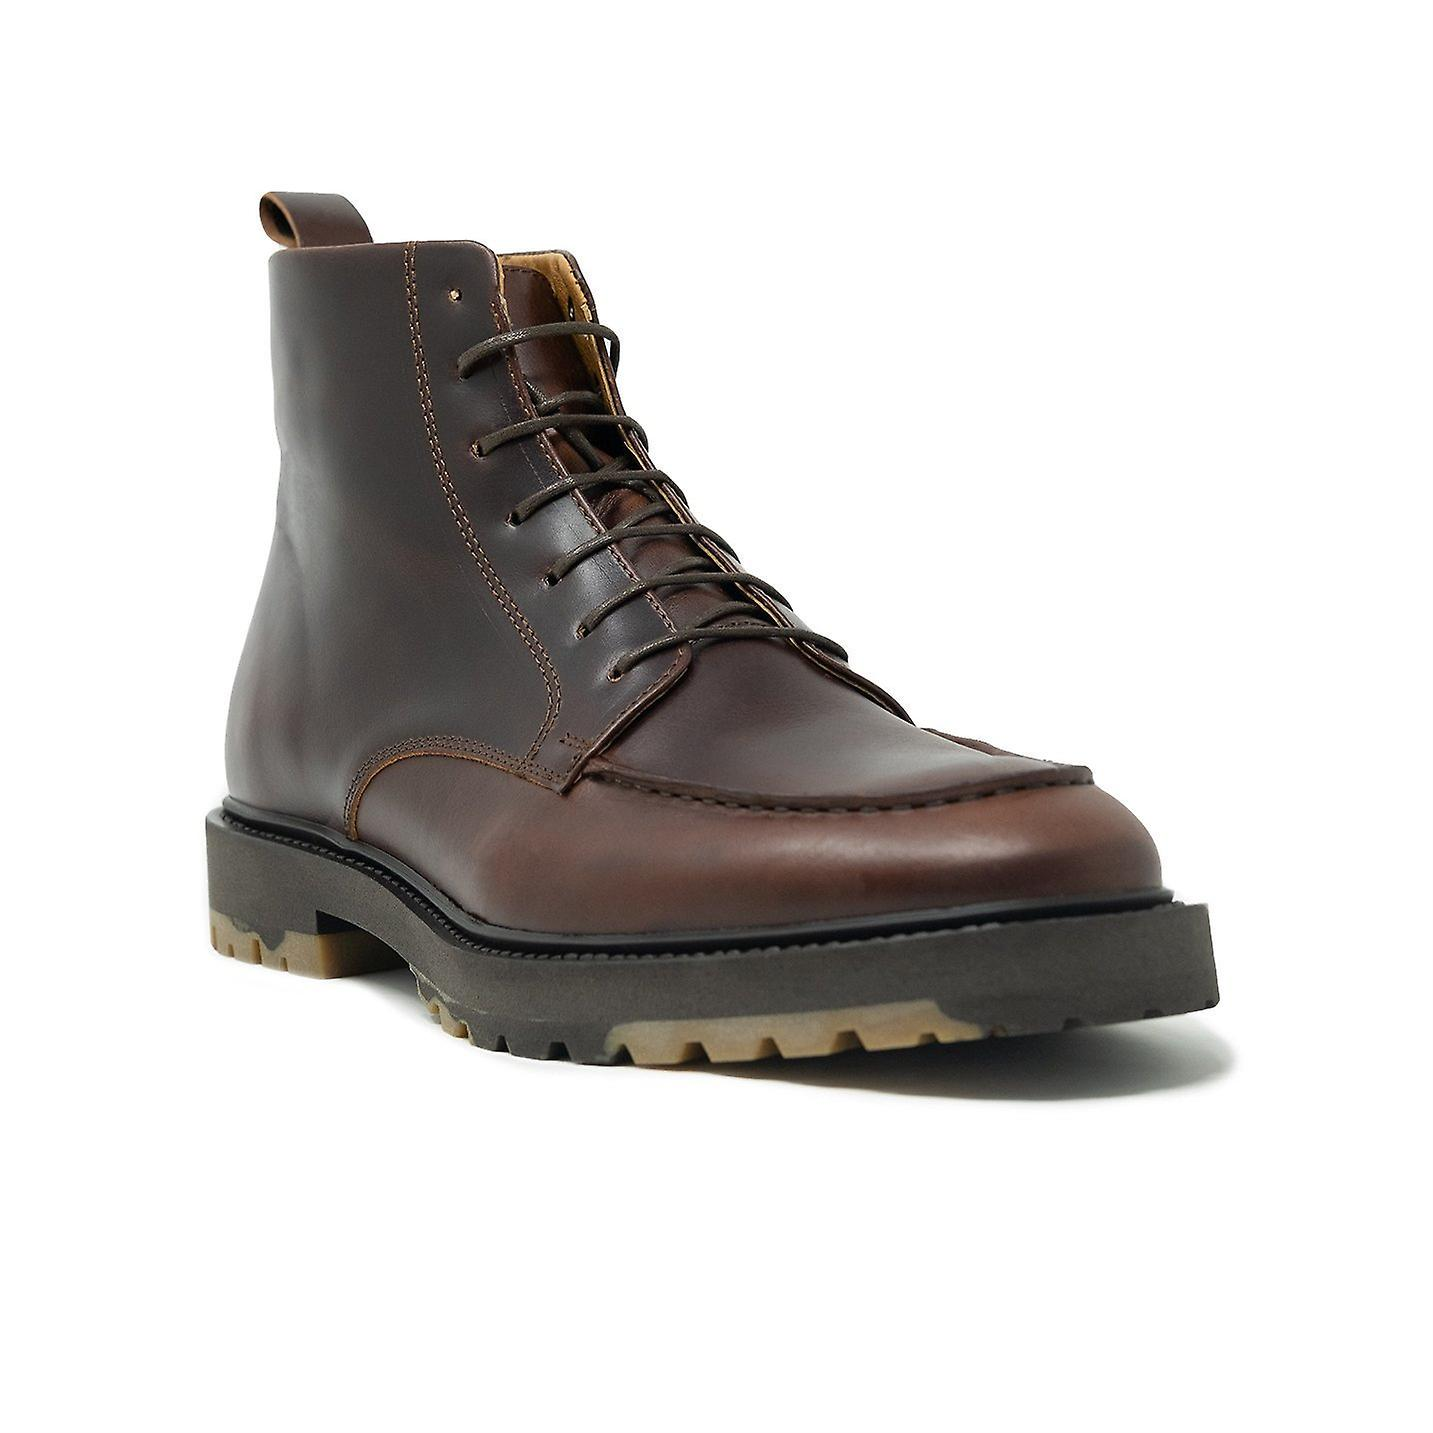 Walk london james apron boot in brown leather